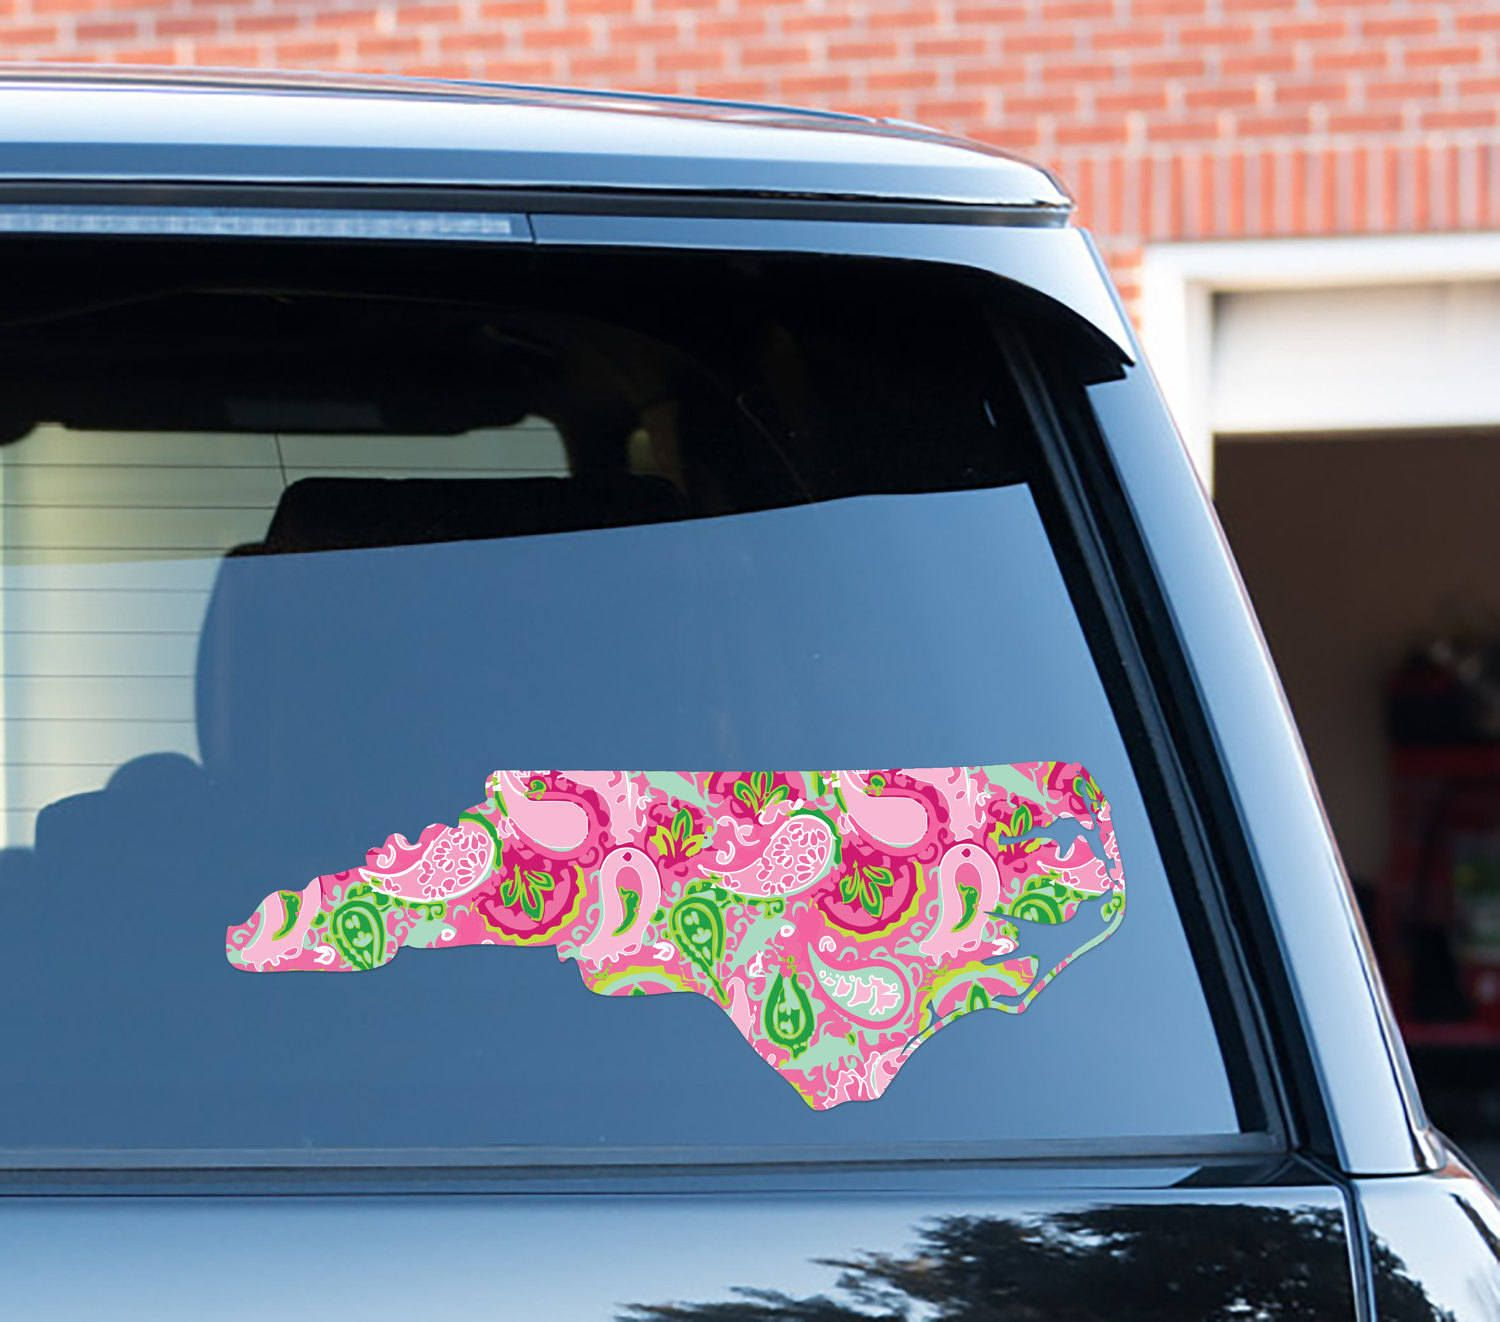 Home State Car Decal Lilly Inspired Car Stickers Car Decor Cute Car Accessories Car Decals Vinyl Decal For Yeti North C Cute Cars Car Stickers Car Decals Vinyl [ 1322 x 1500 Pixel ]